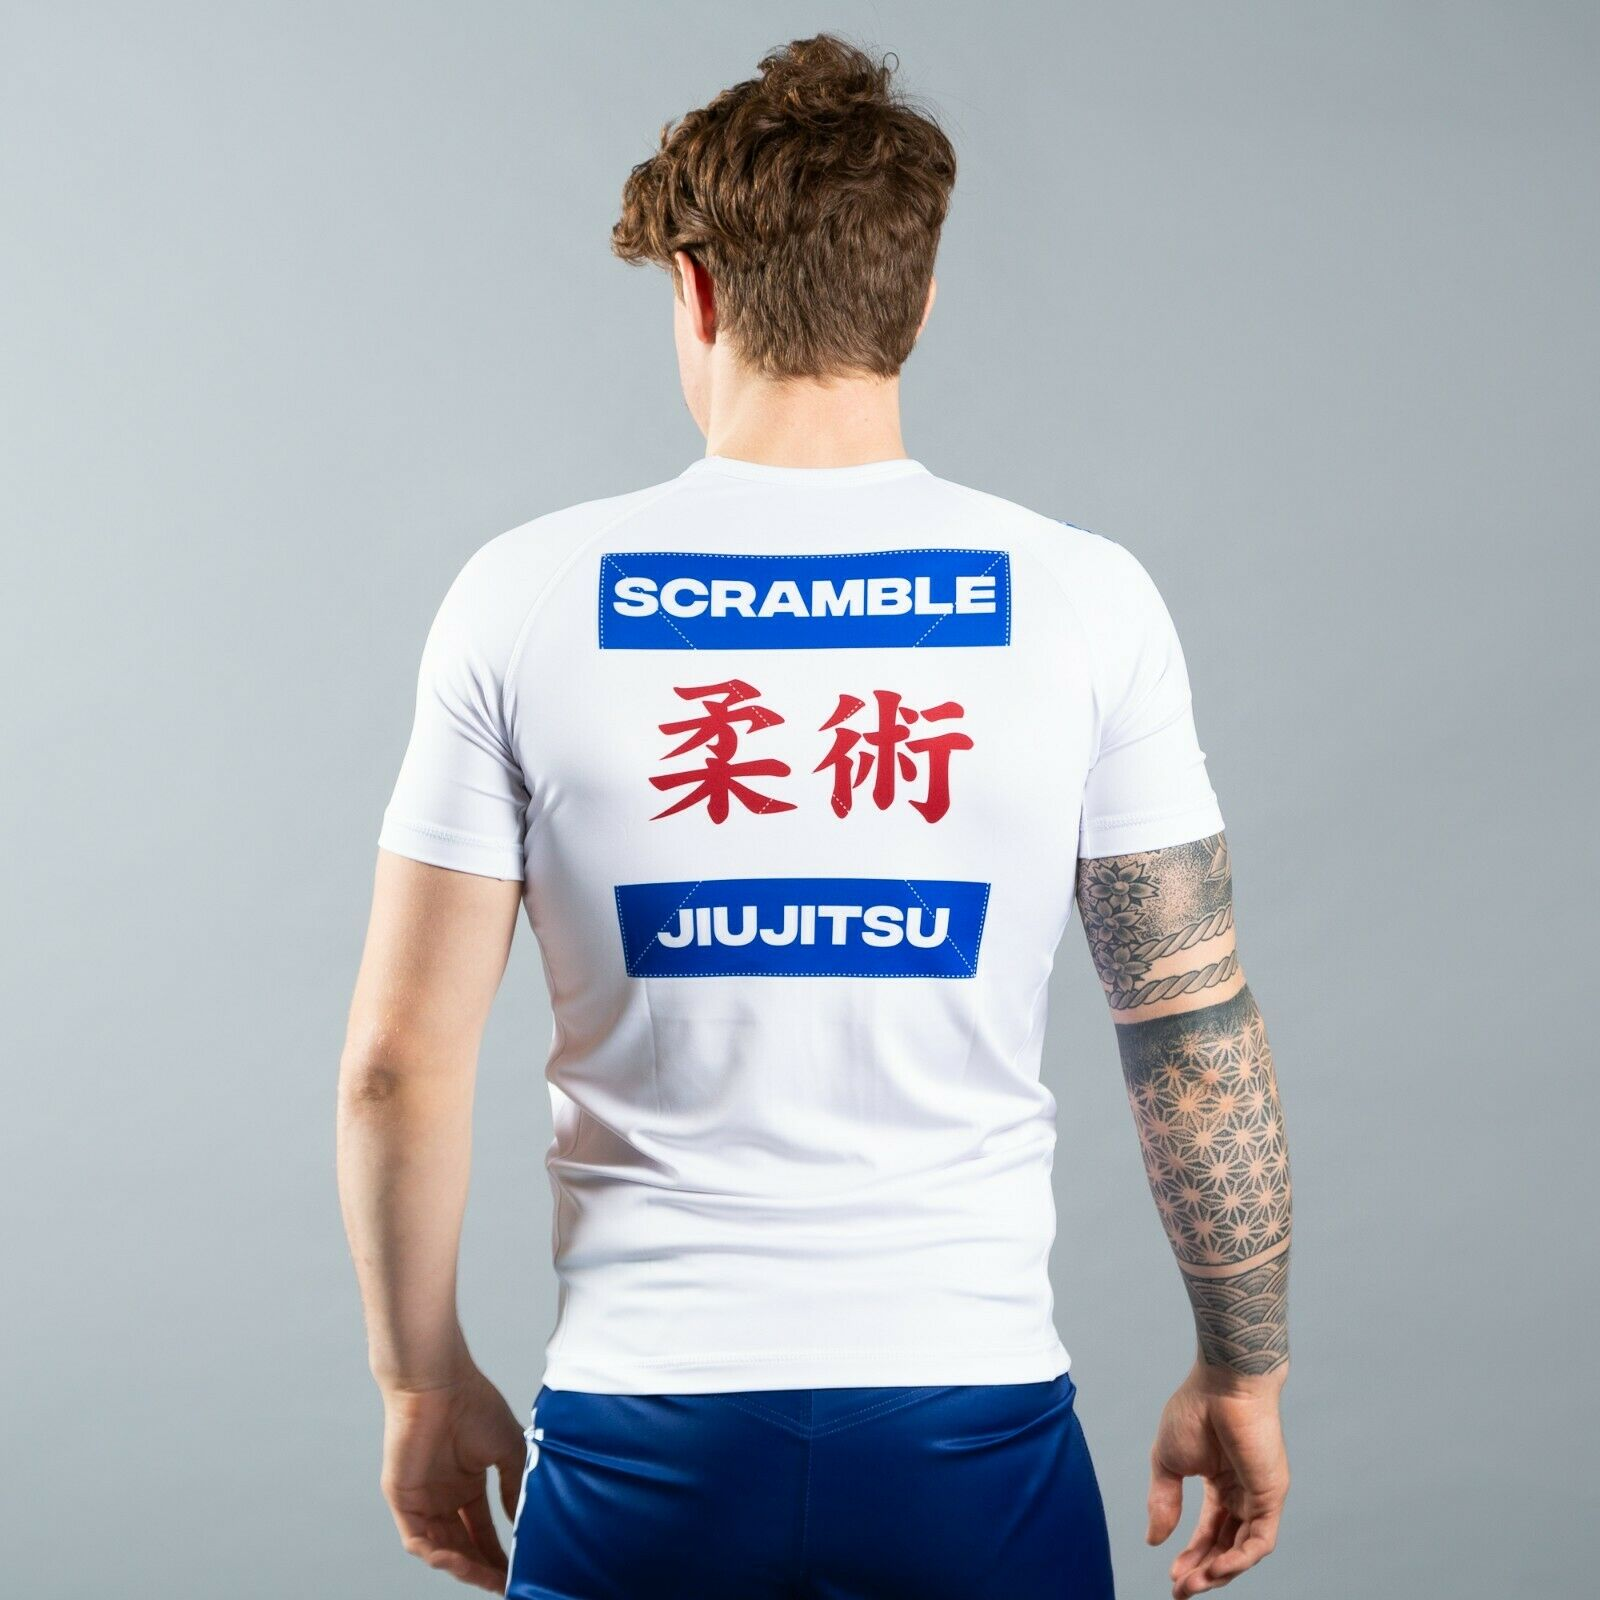 Scramble Shiai Rashguard White Jiu Jitsu BJJ No Gi Grappling Rash Guard